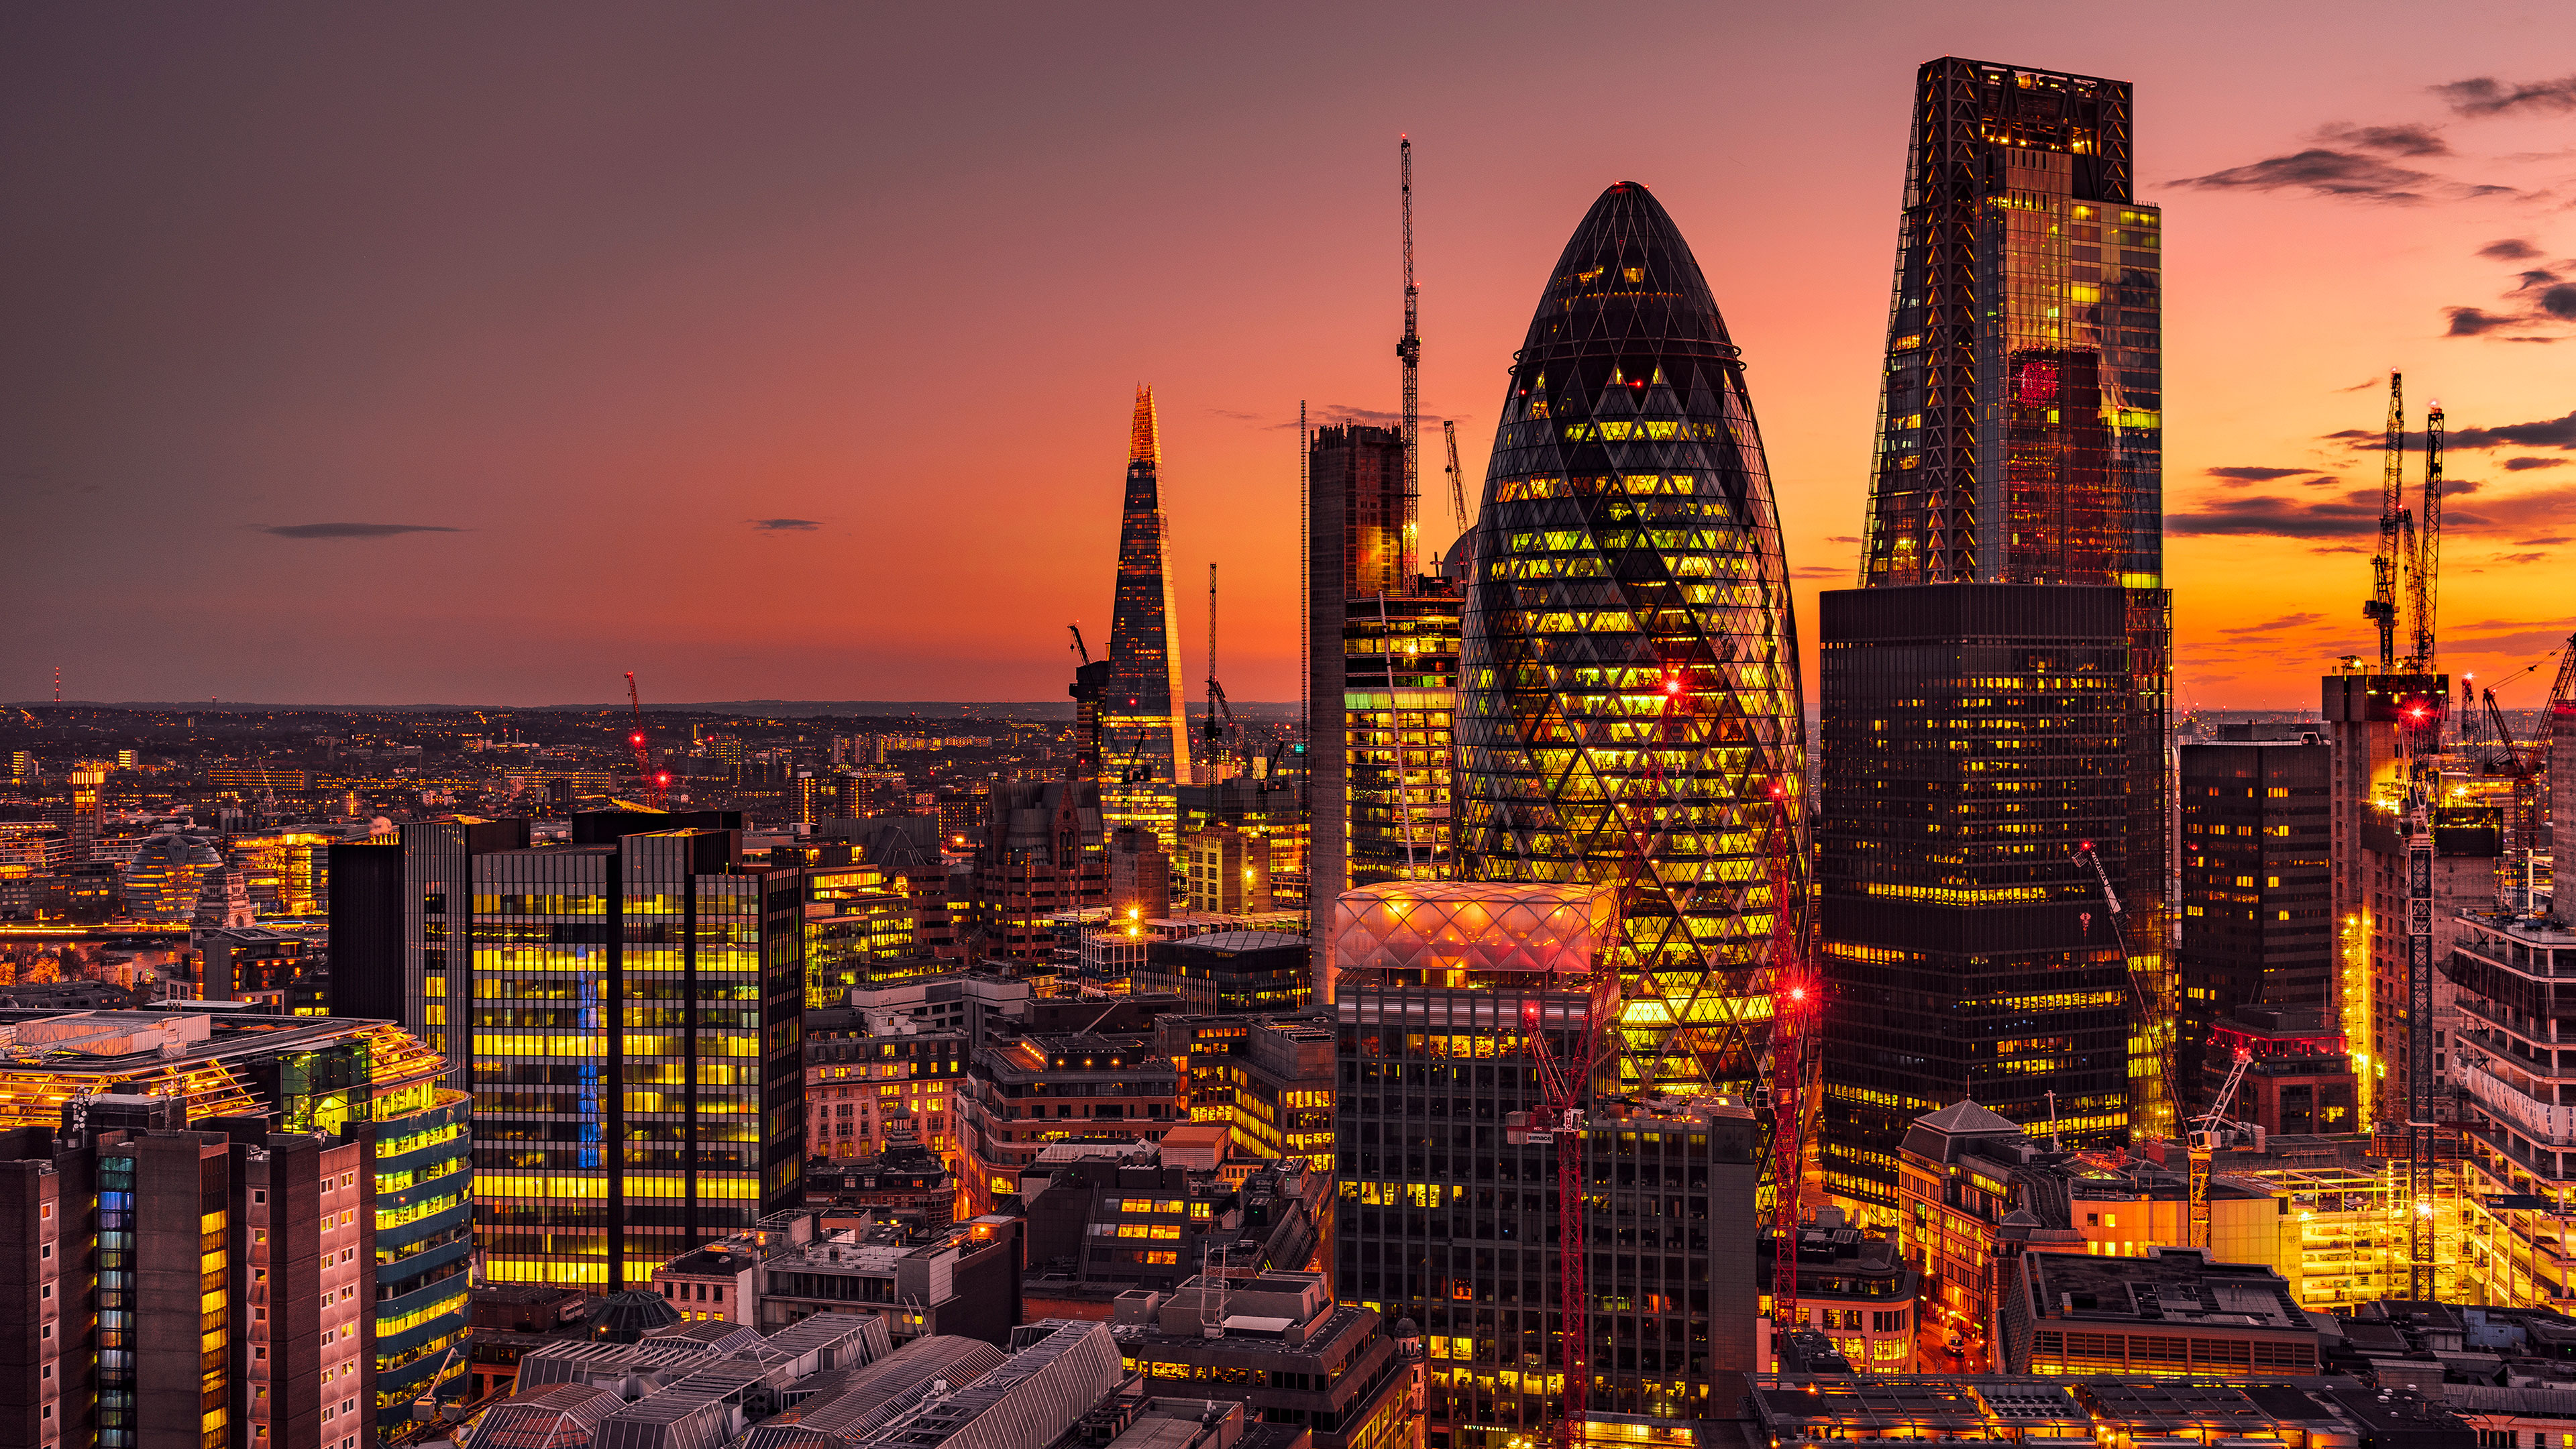 1366x768 London Lights 4k 1366x768 Resolution Hd 4k